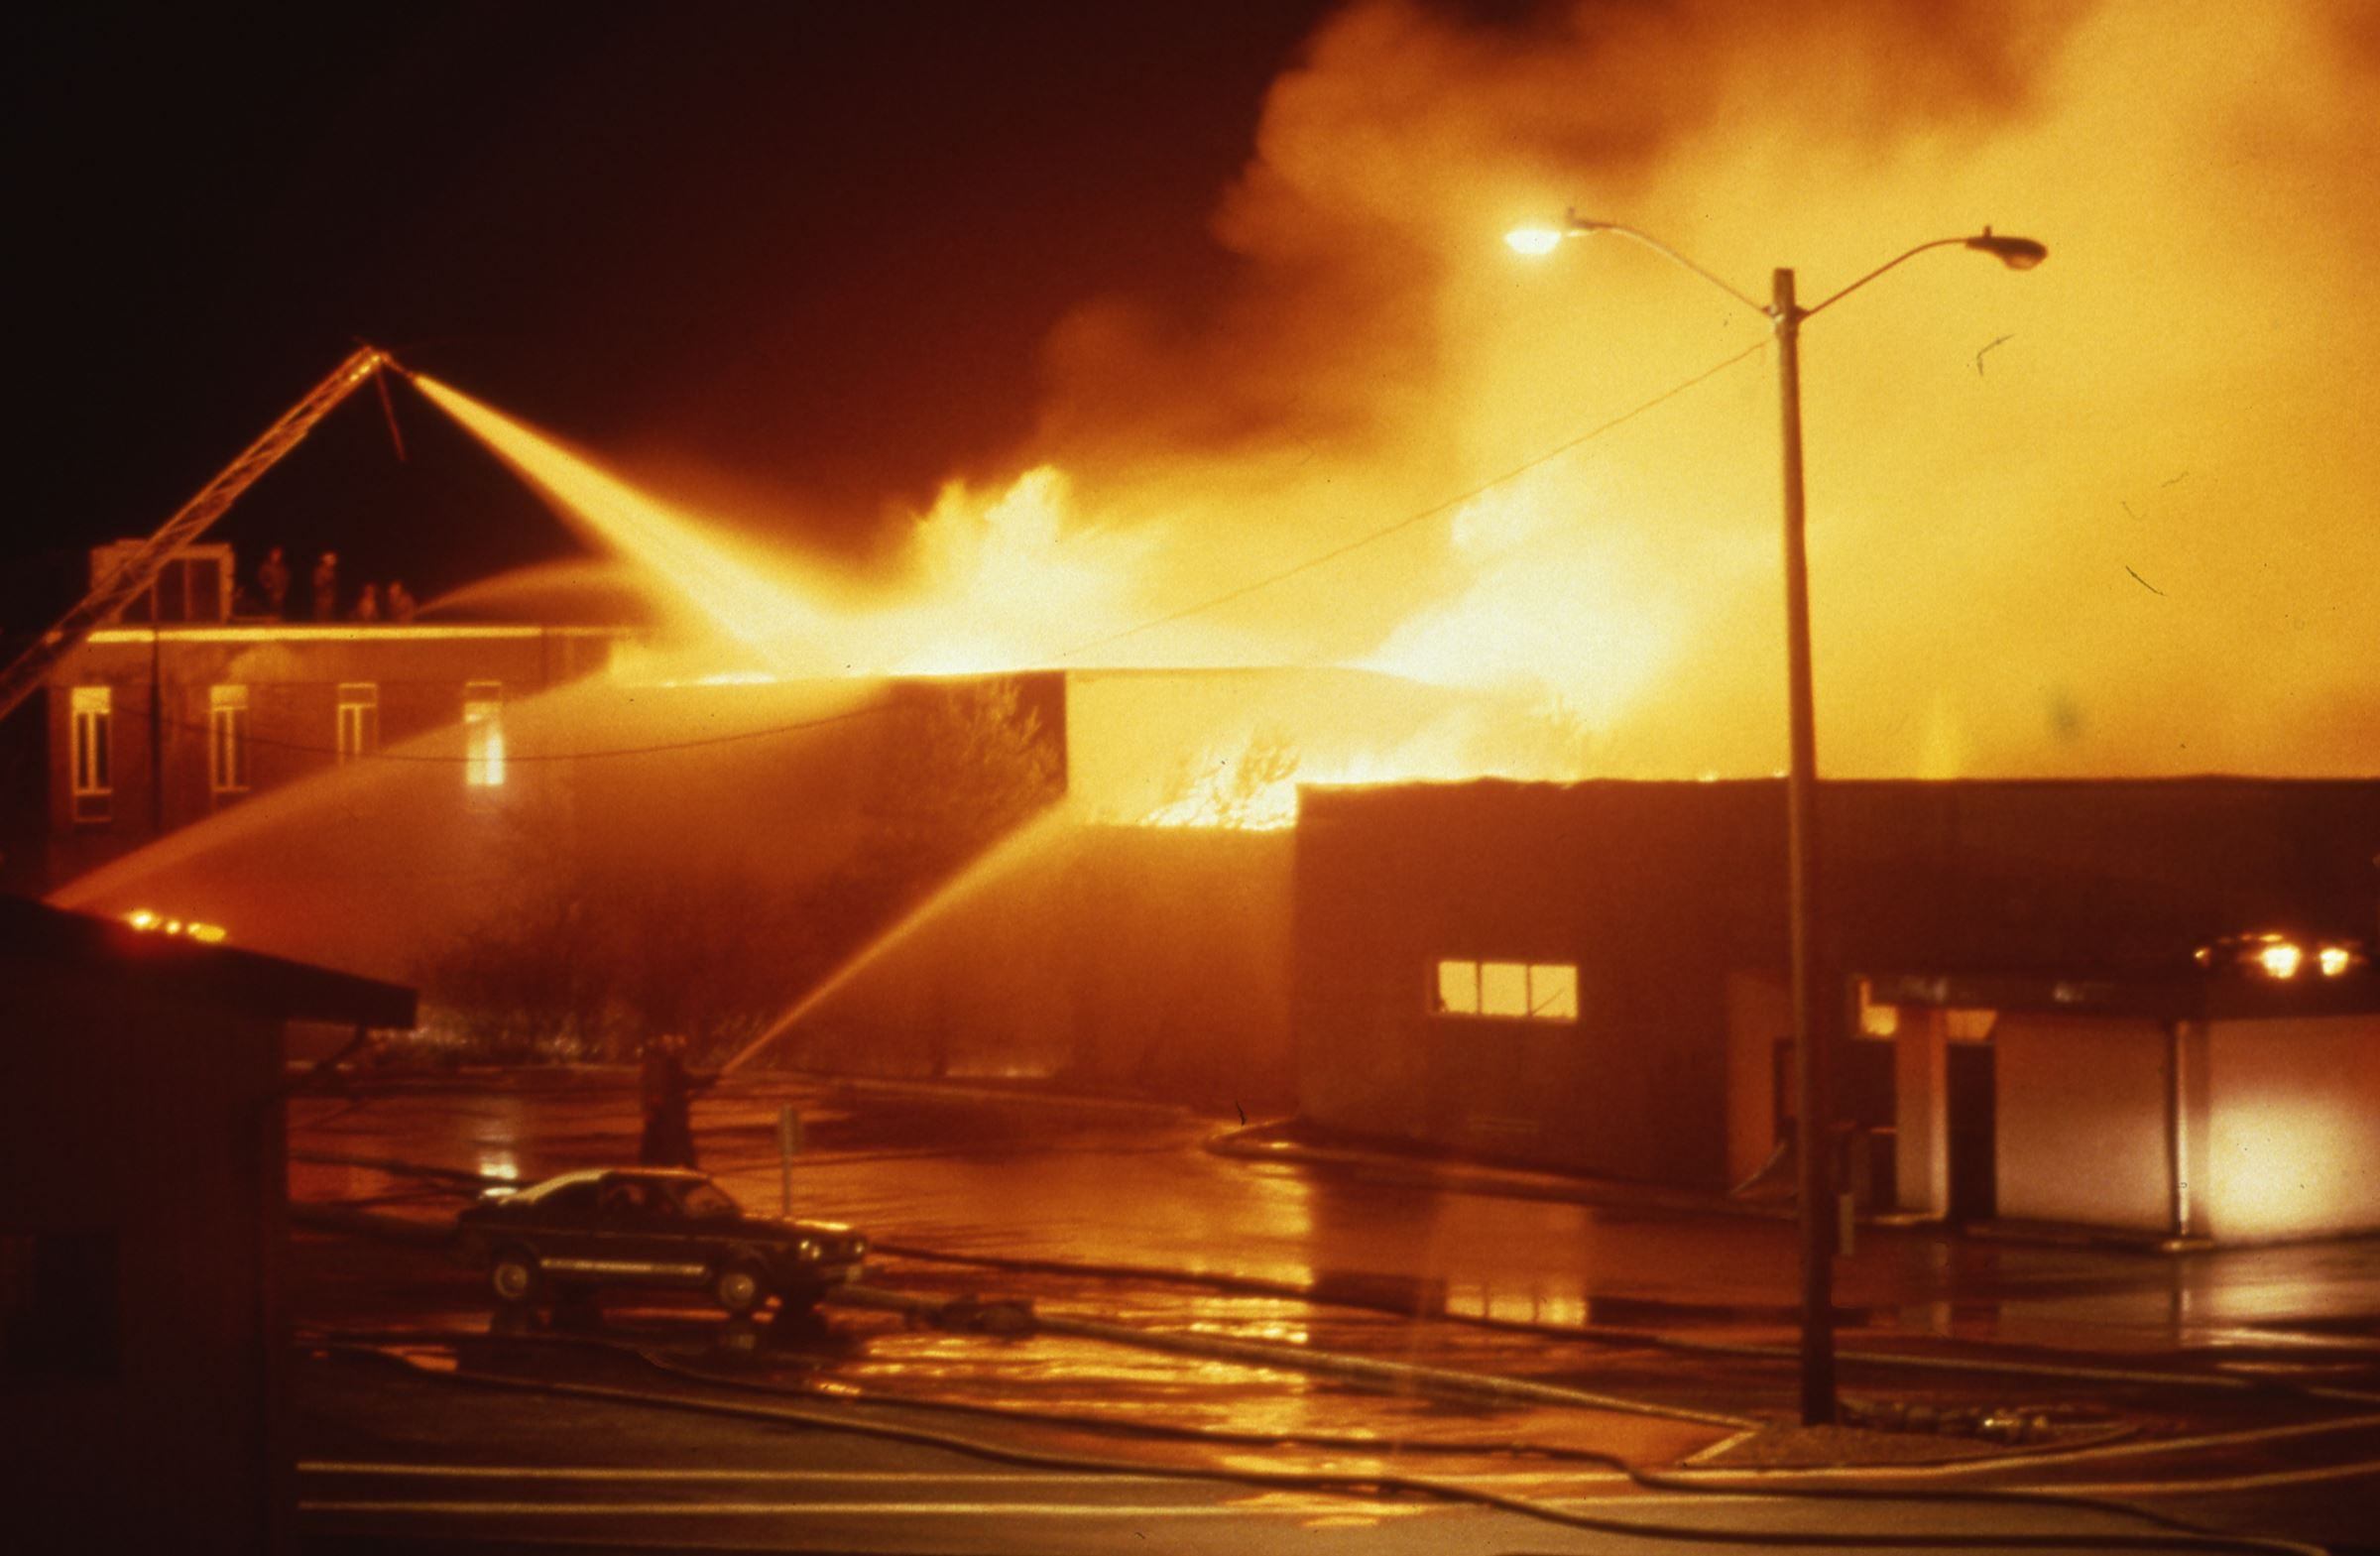 1987 fire at Everett Community College